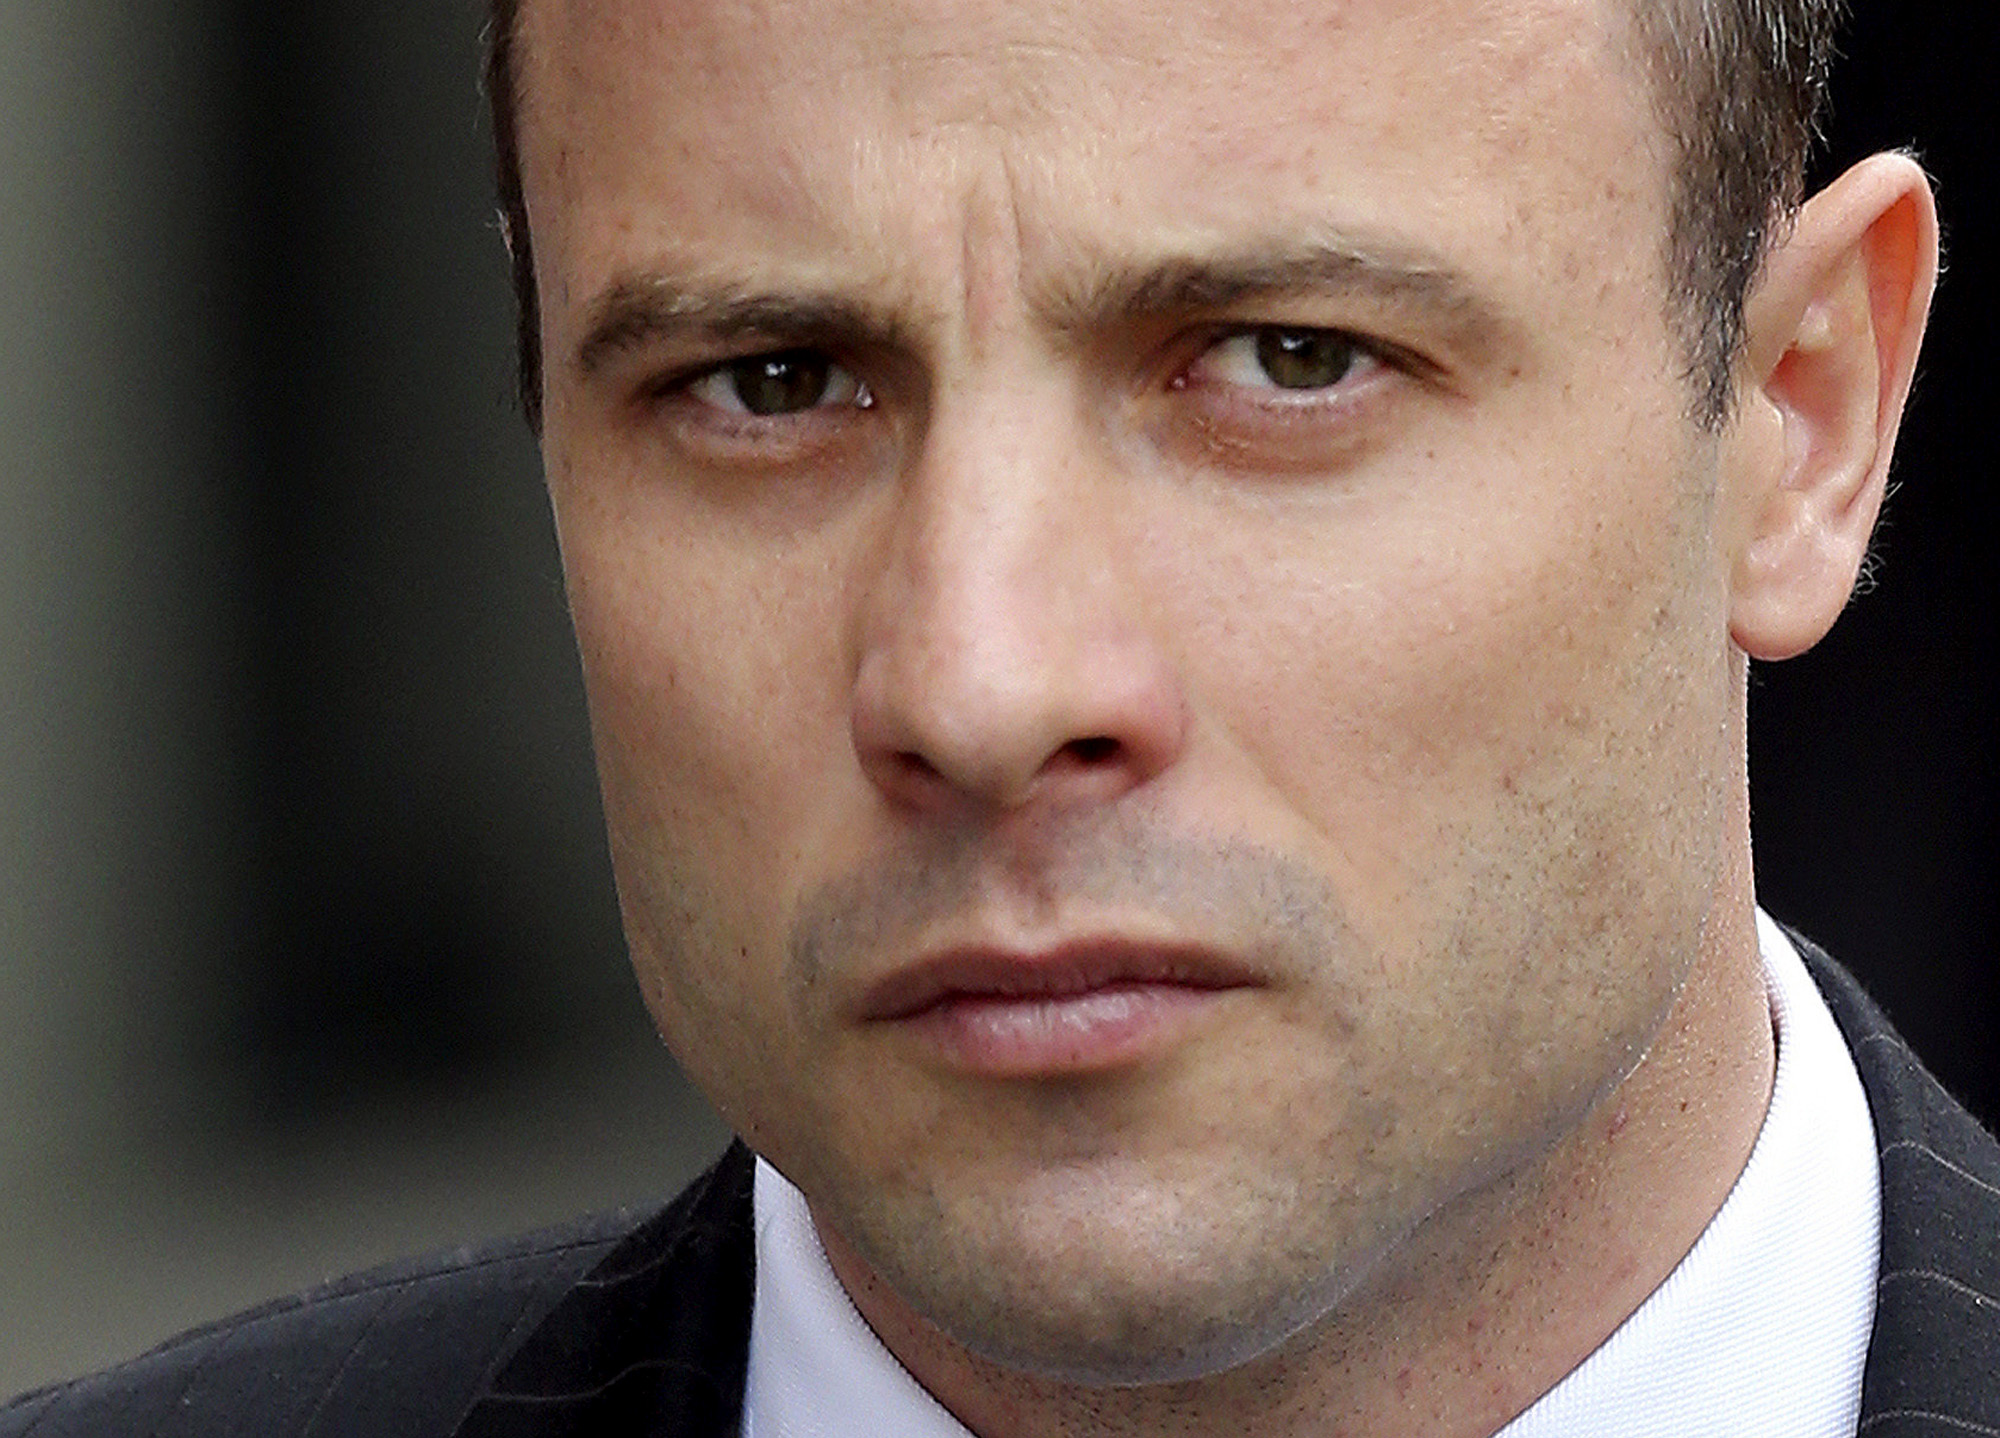 Oscar Pistorius arrives at the high court in Pretoria, South Africa, Wednesday, April 9, 2014. P